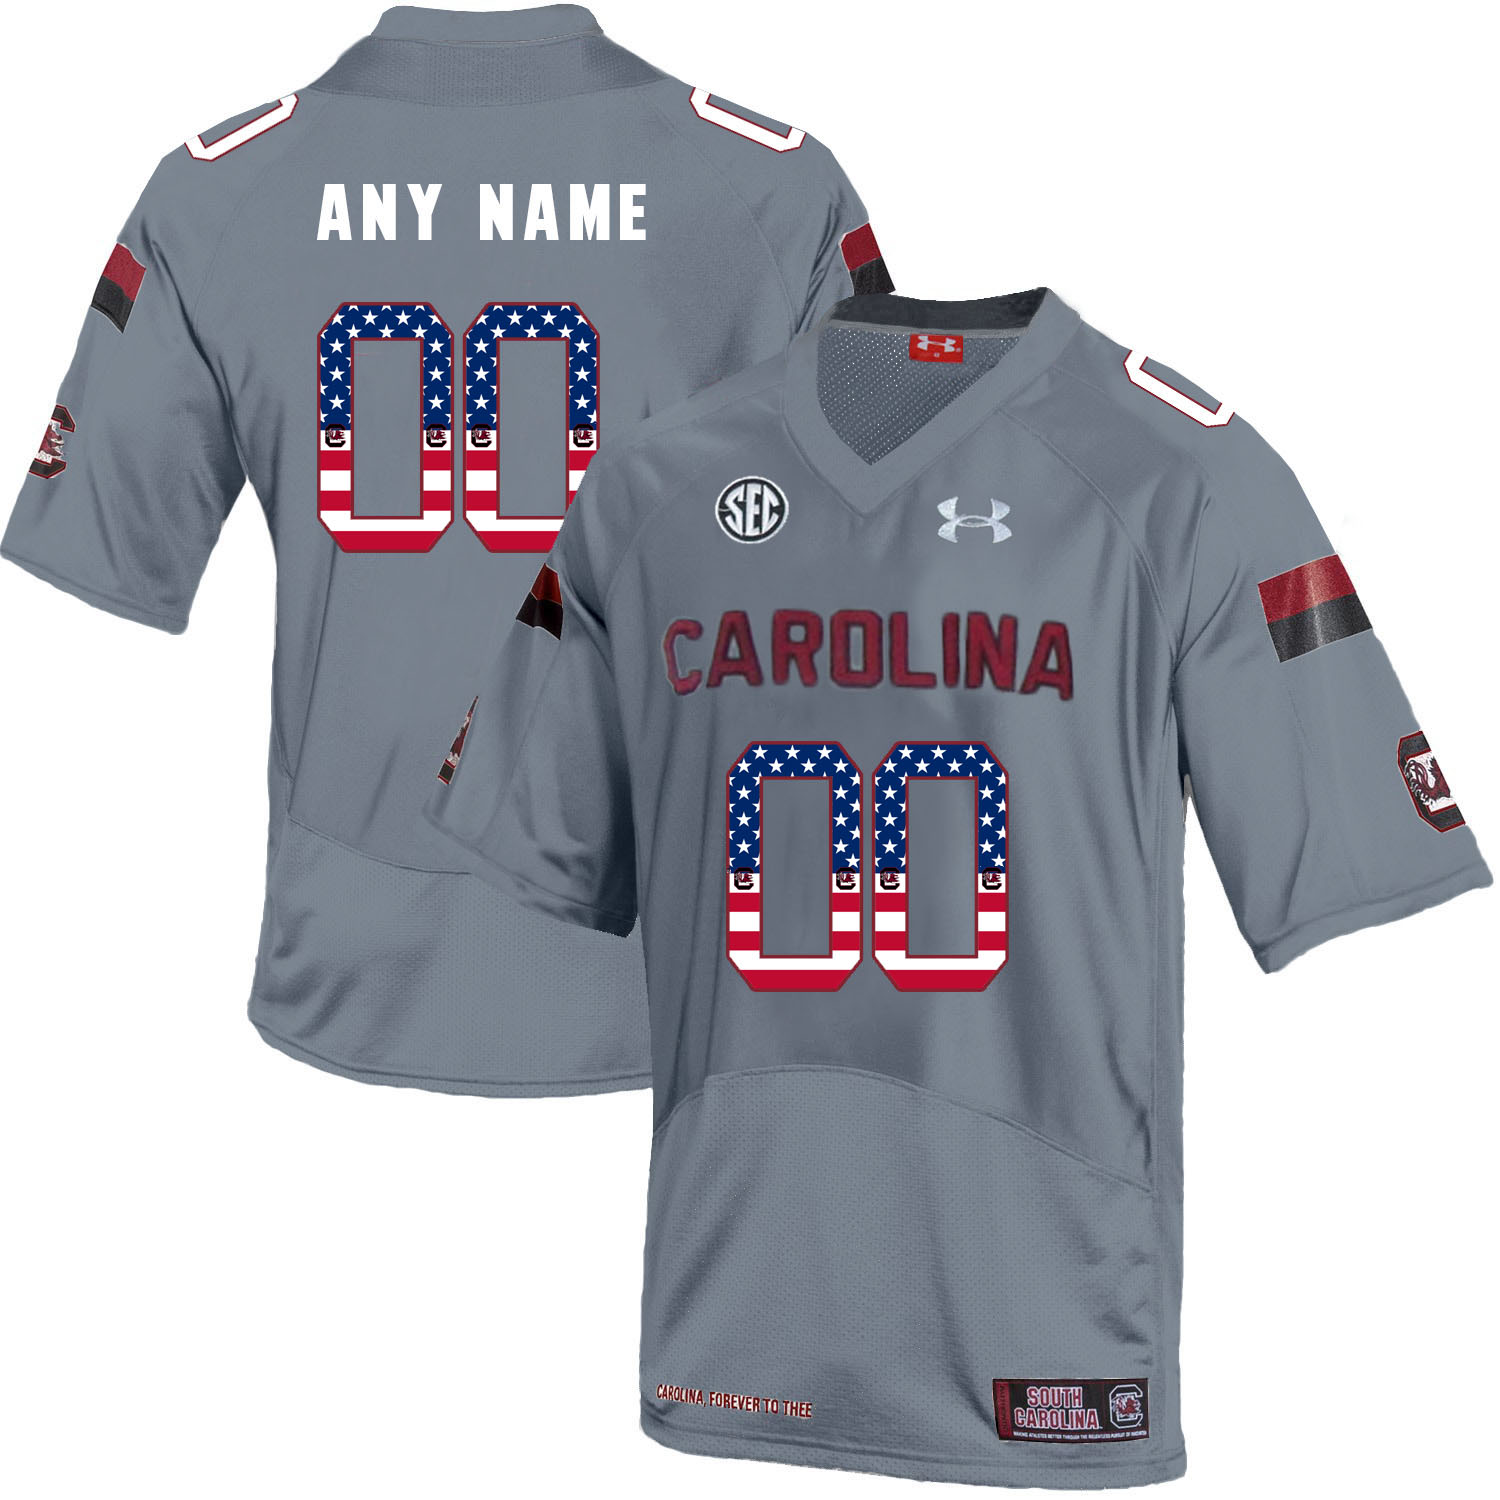 South Carolina Gamecocks Gray Customized USA Flag College Football Jersey